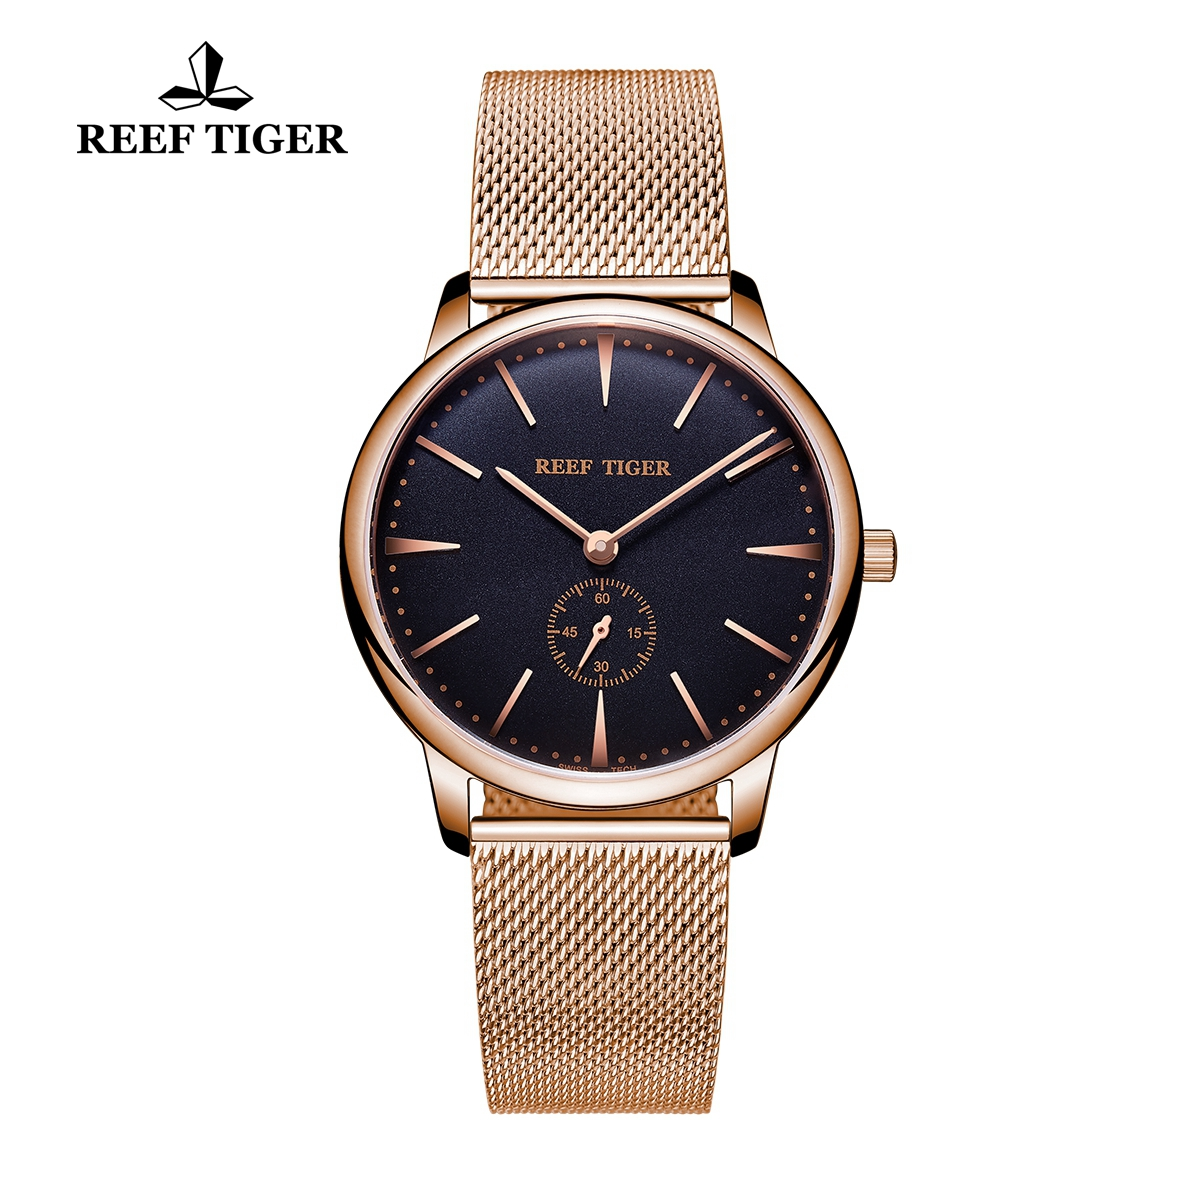 Reef Tiger Vintage Couple Watch Black Dial Full Rose Gold Mens Watches RGA820-MPBP